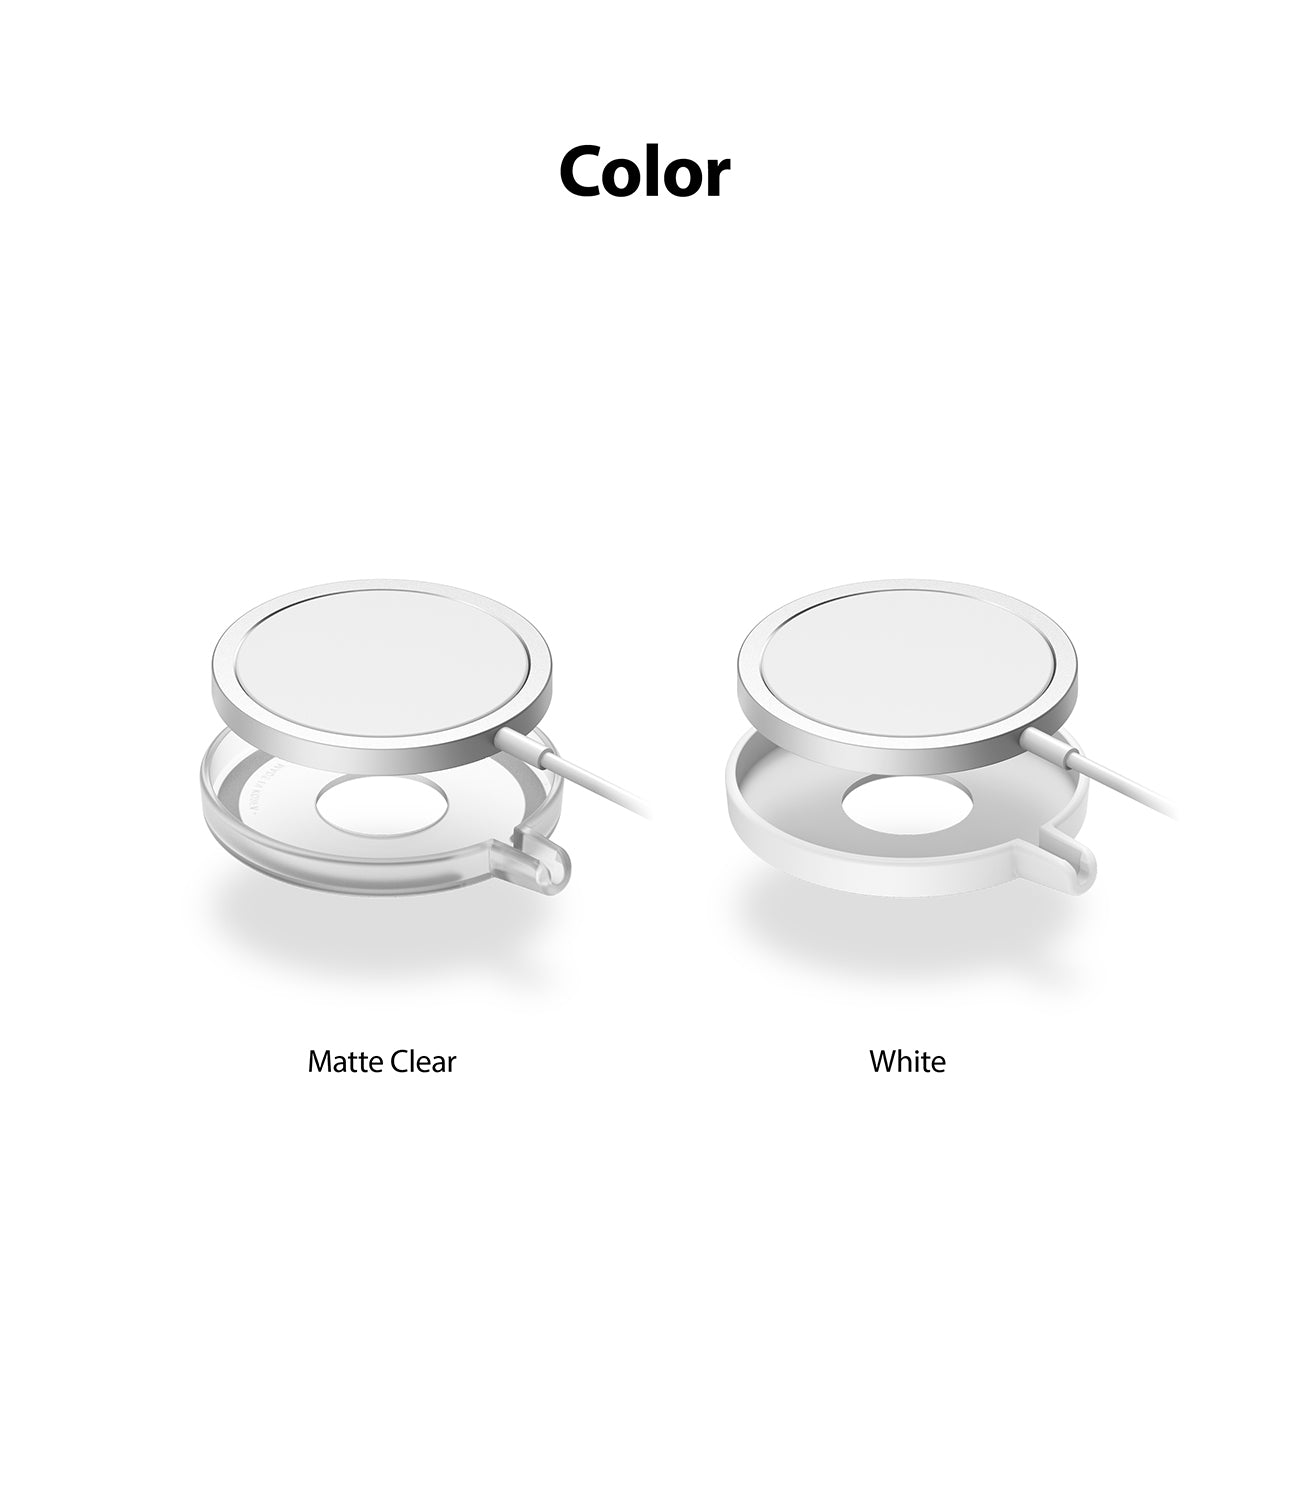 available in matte clear, white